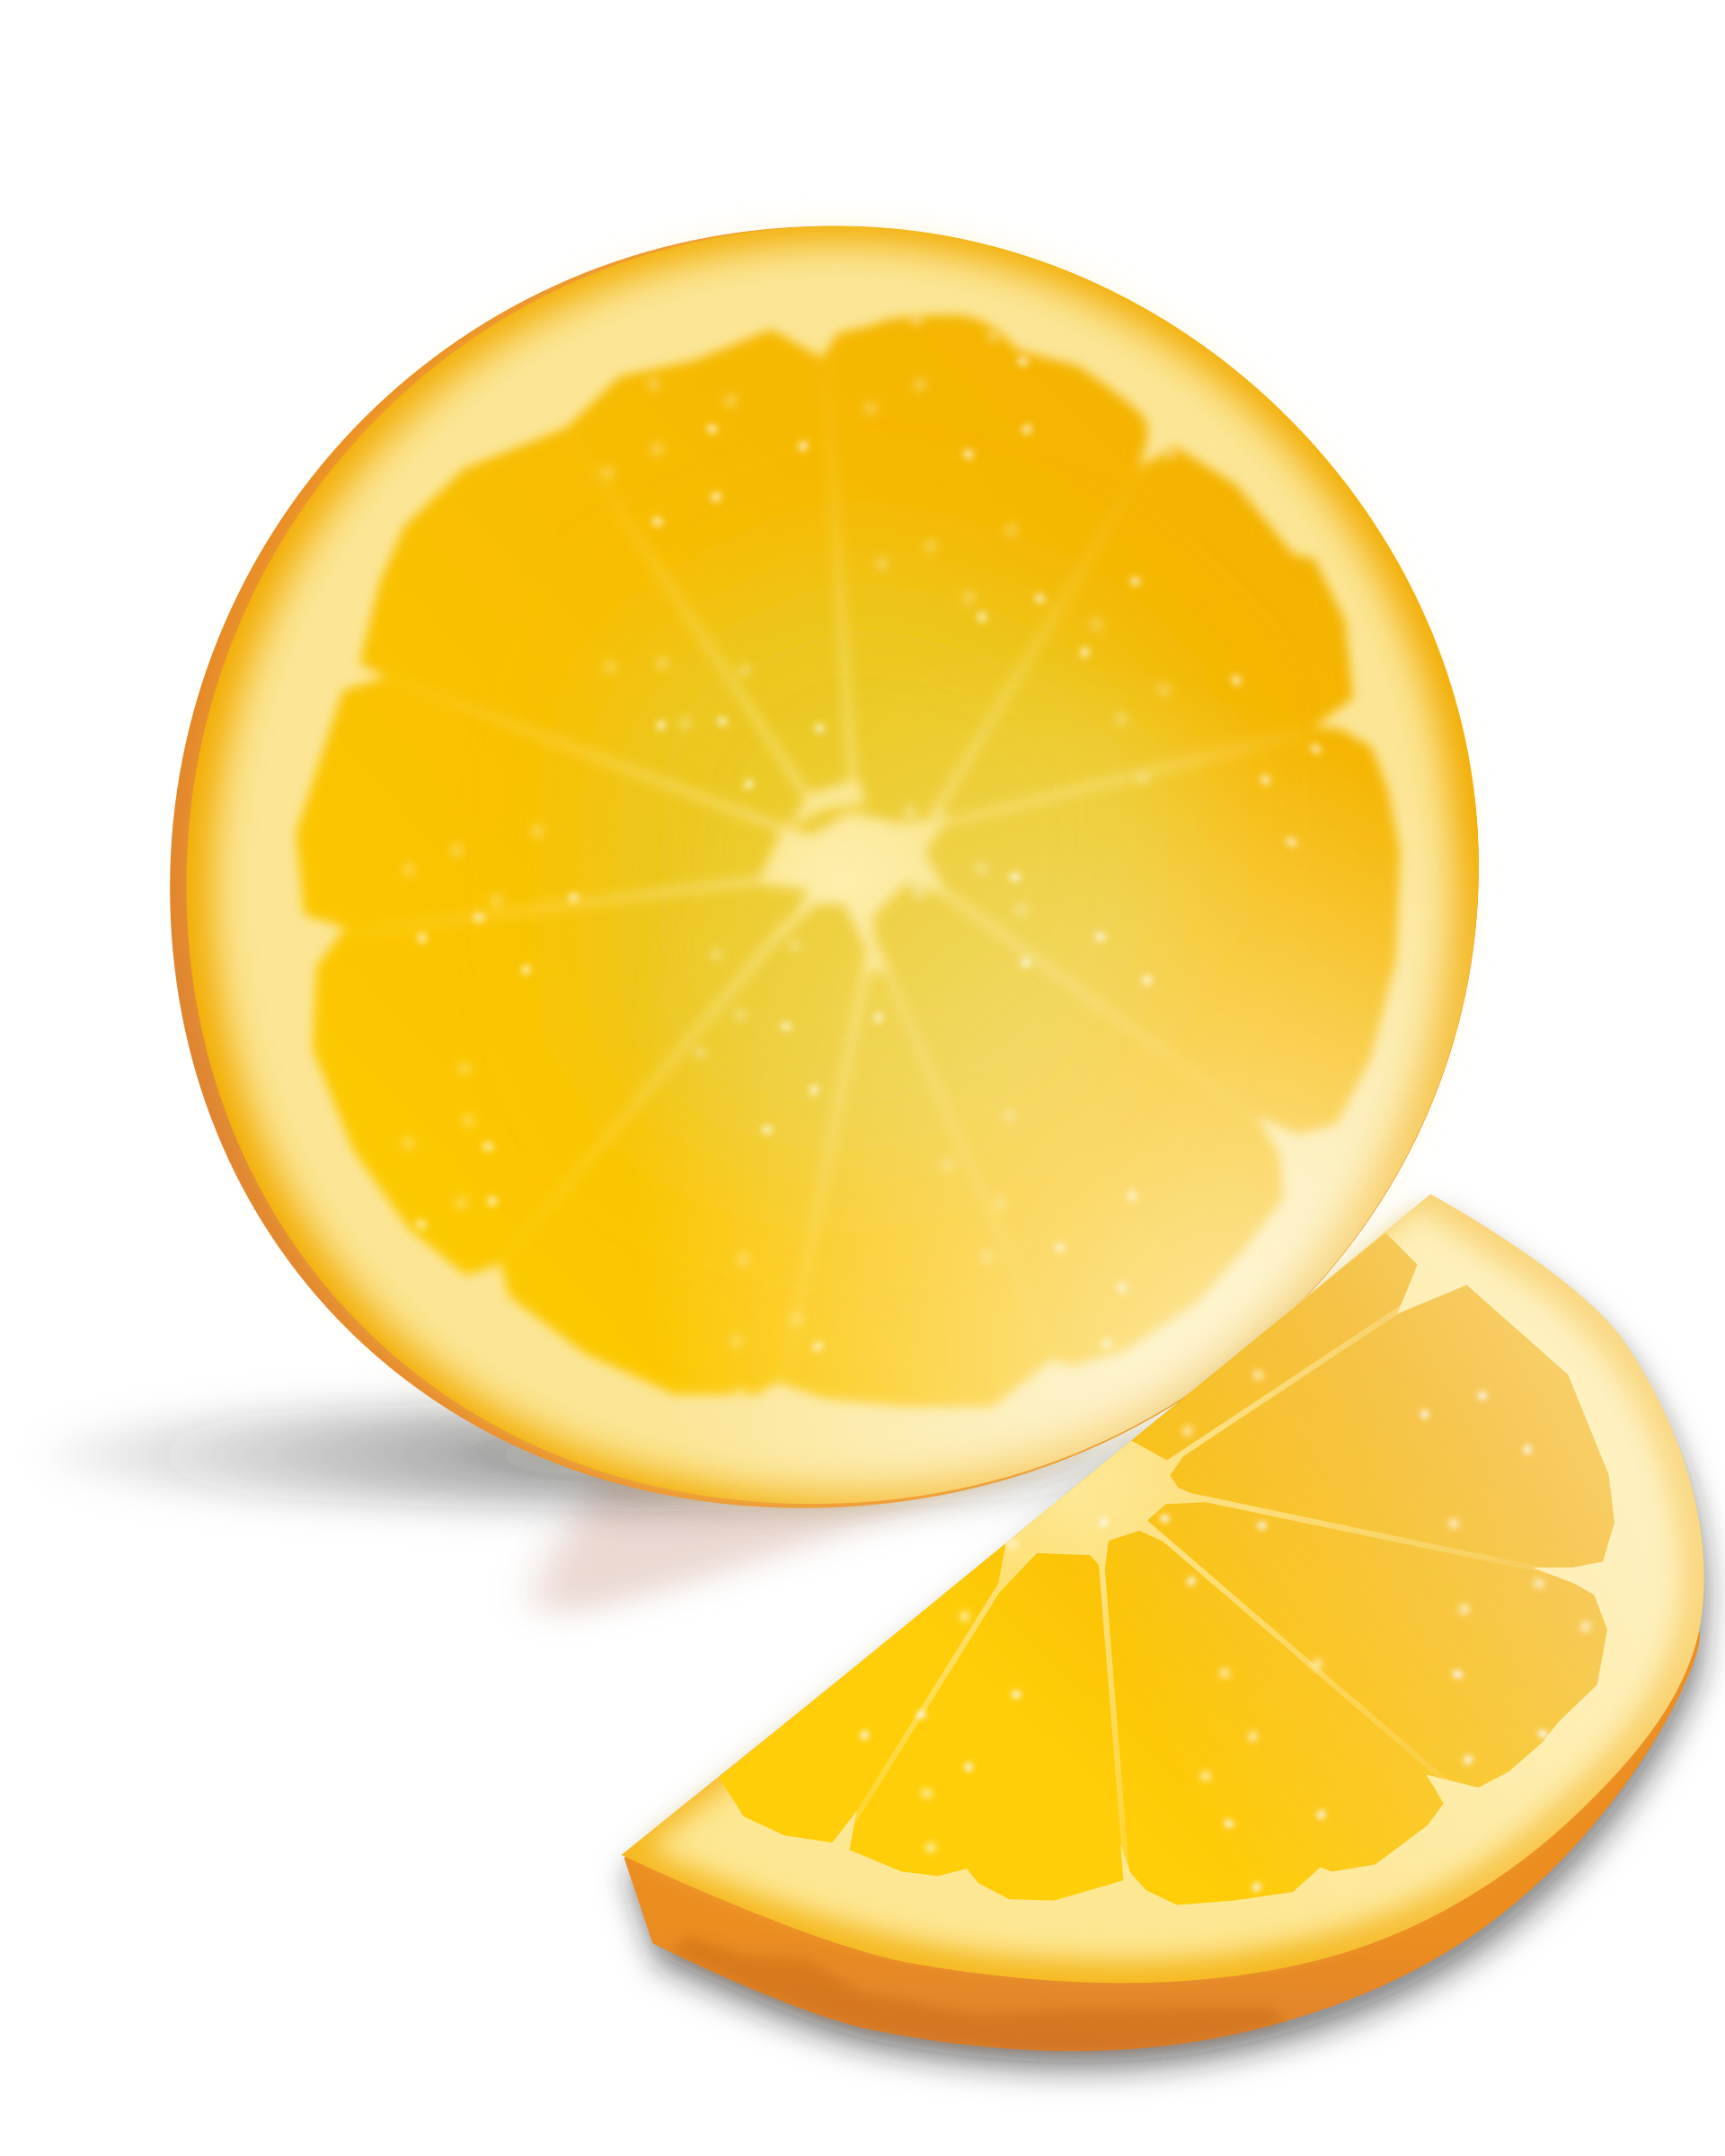 Apple orange lemon clipart image freeuse library Clipart - Orange Slice image freeuse library